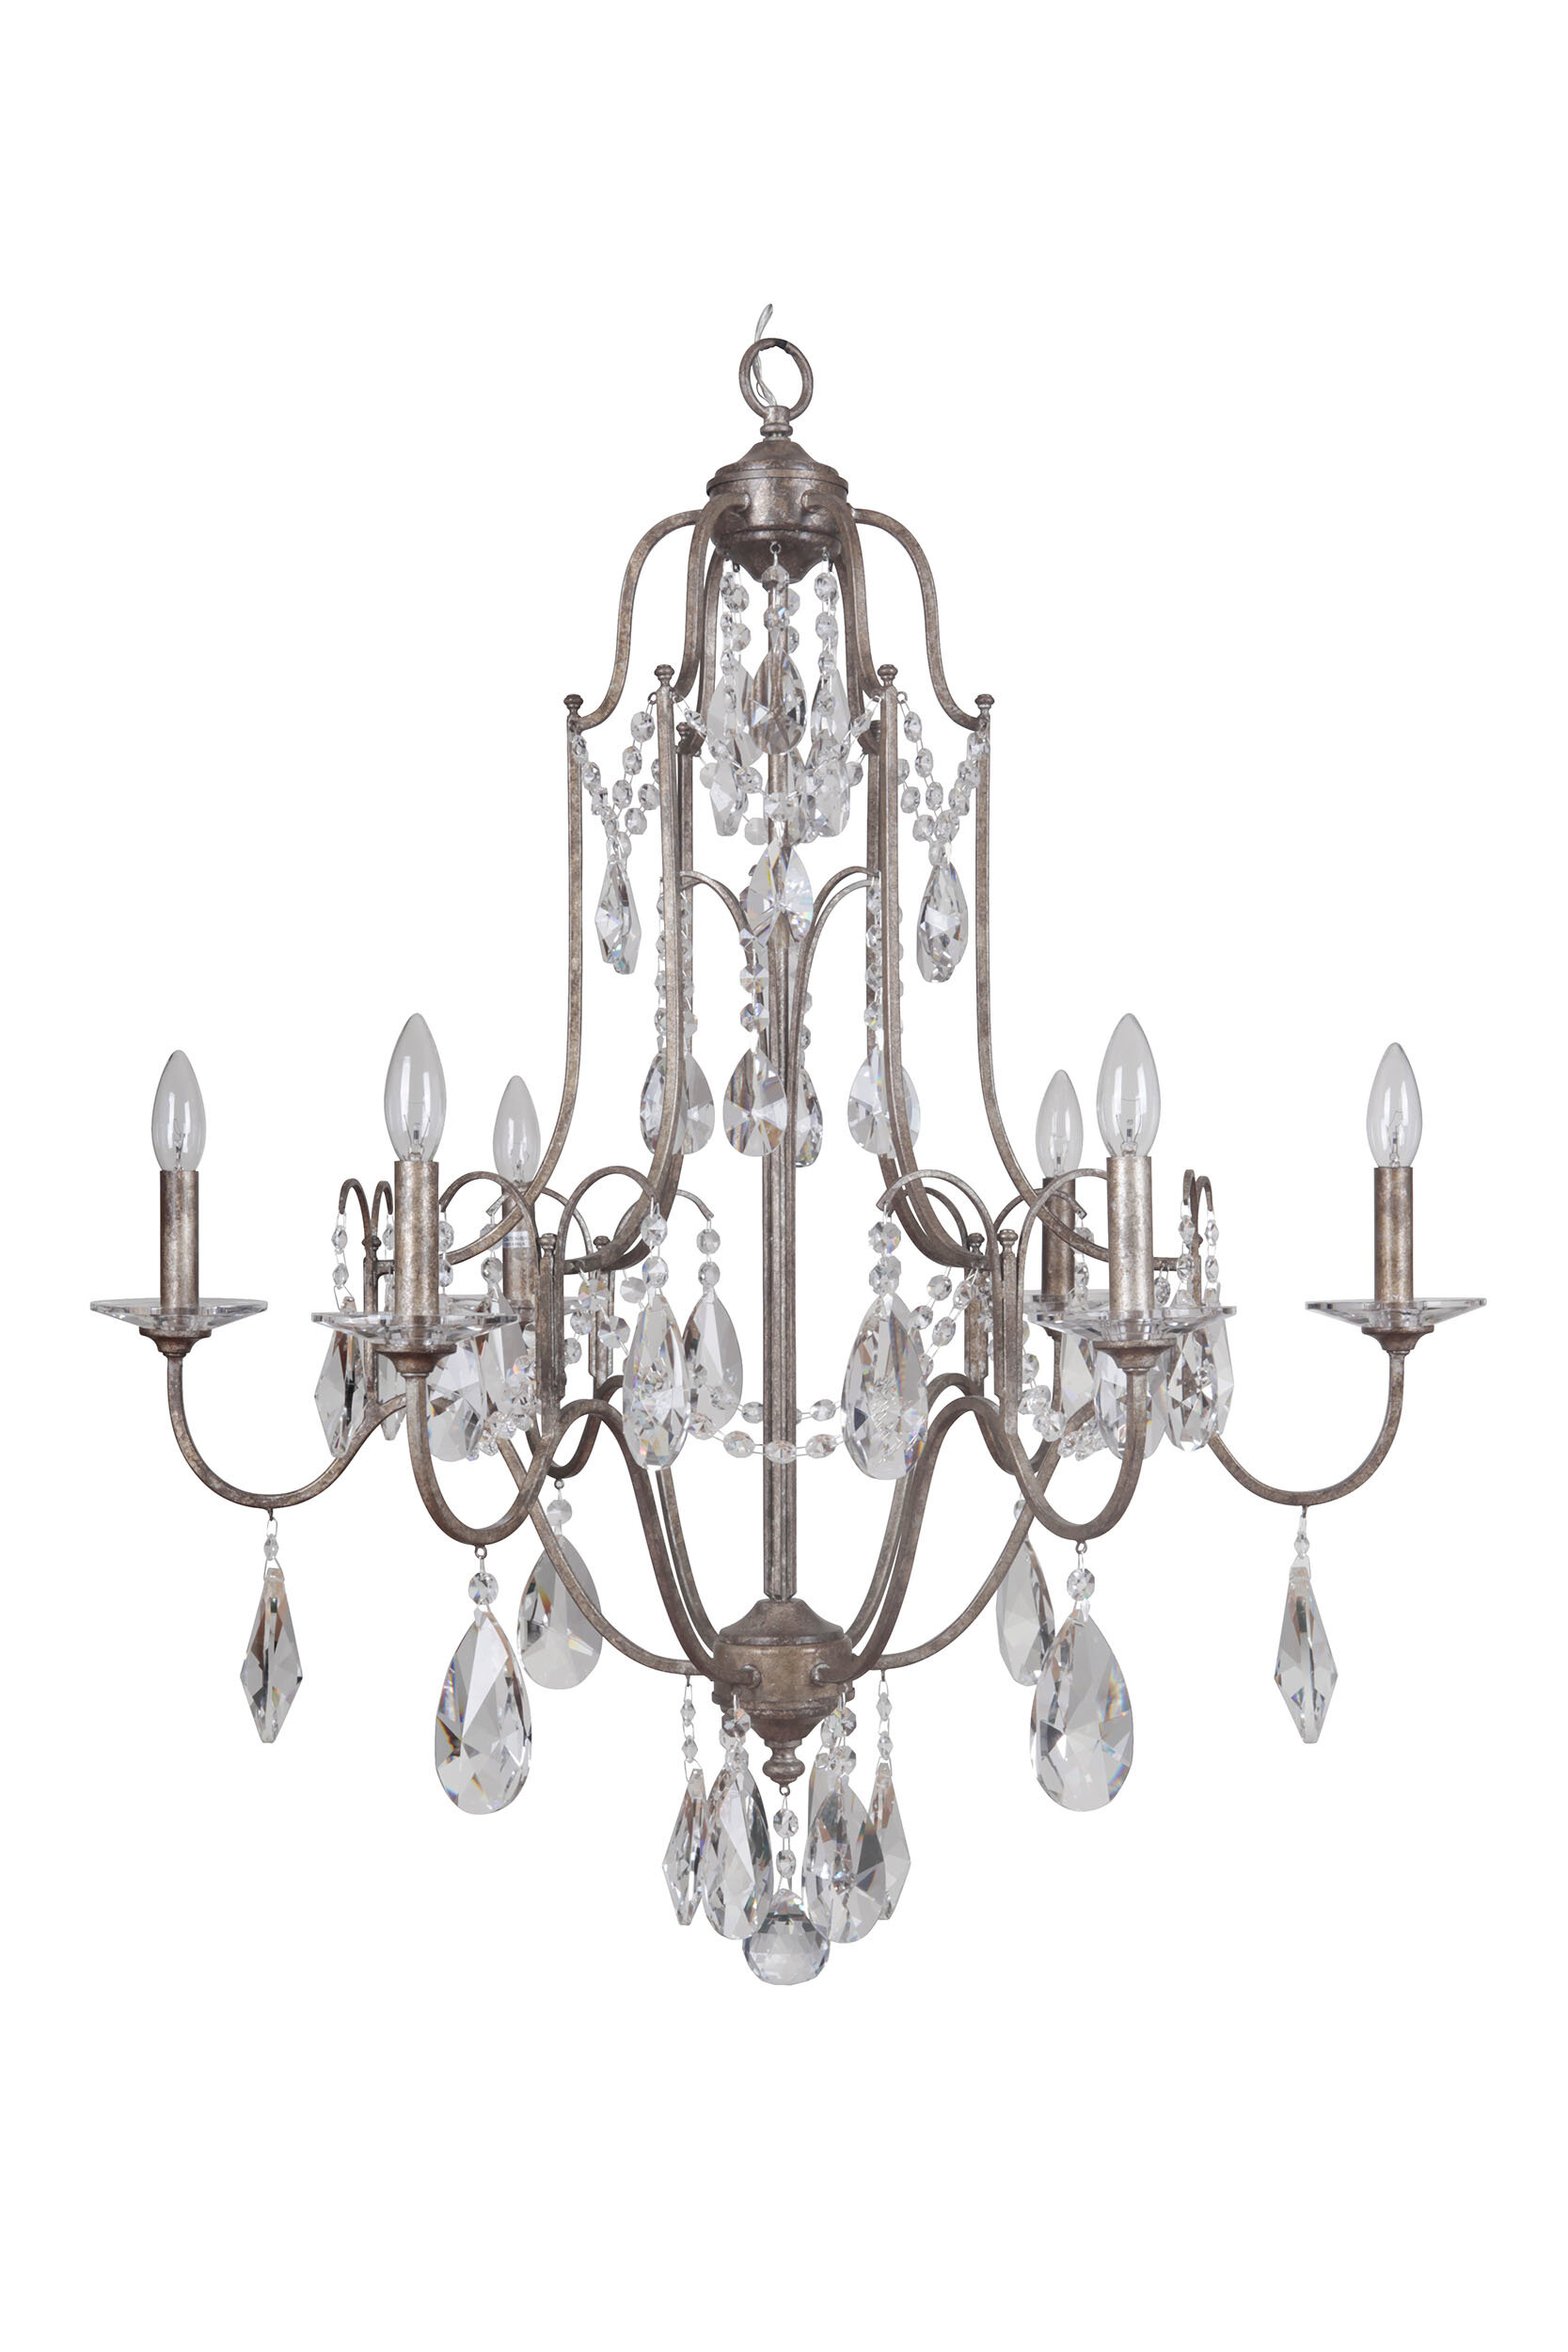 Marianahome 6 Light Candle Style Classic Traditional Chandelier With Crystal Accents Accents Wayfair